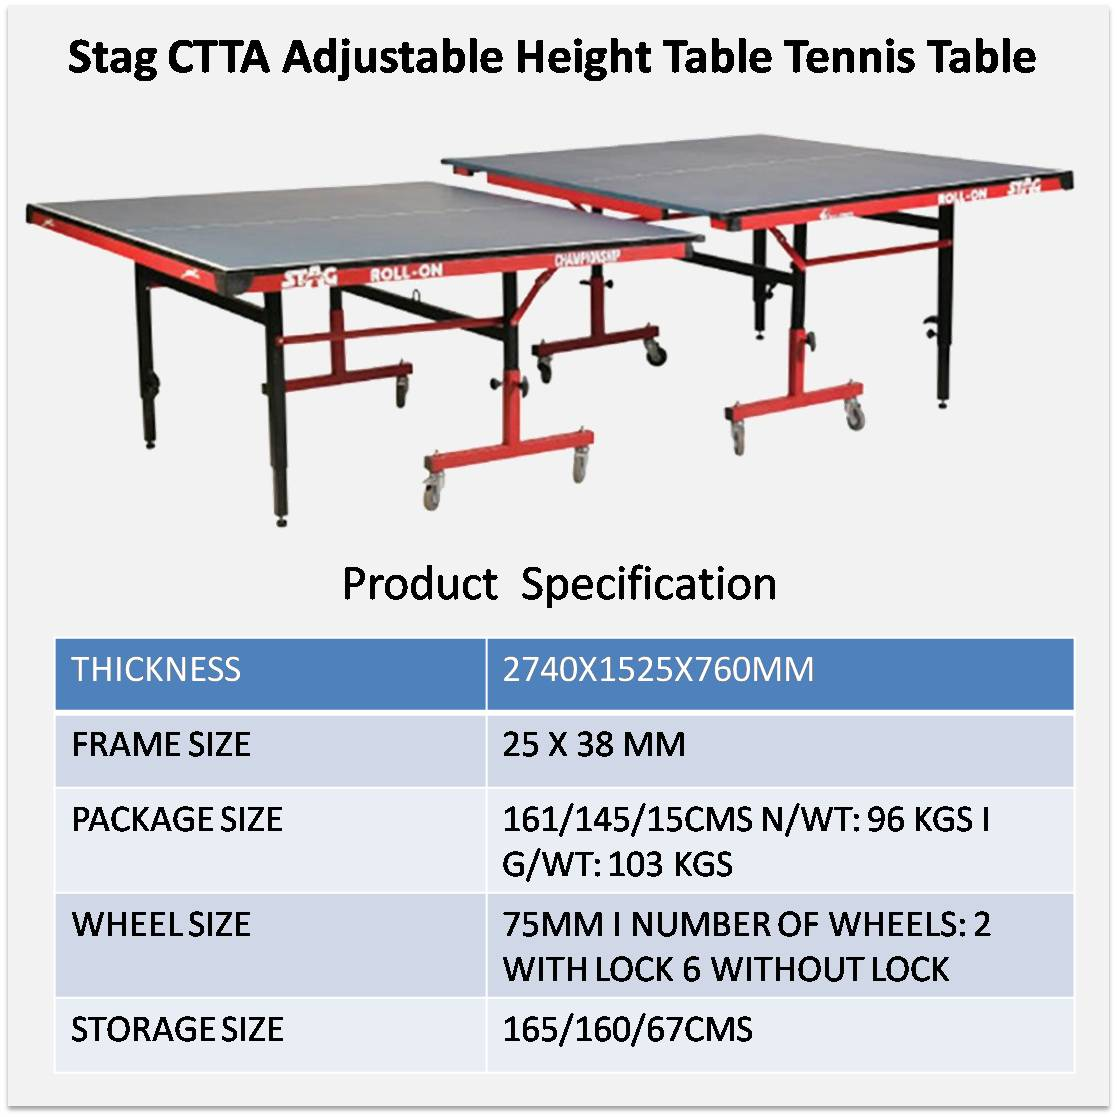 Stag CTTA Adjustable Height Table Tennis Table   Buy Stag CTTA Adjustable Height  Table Tennis Table Online At Lowest Prices In India   | Khelmart.com